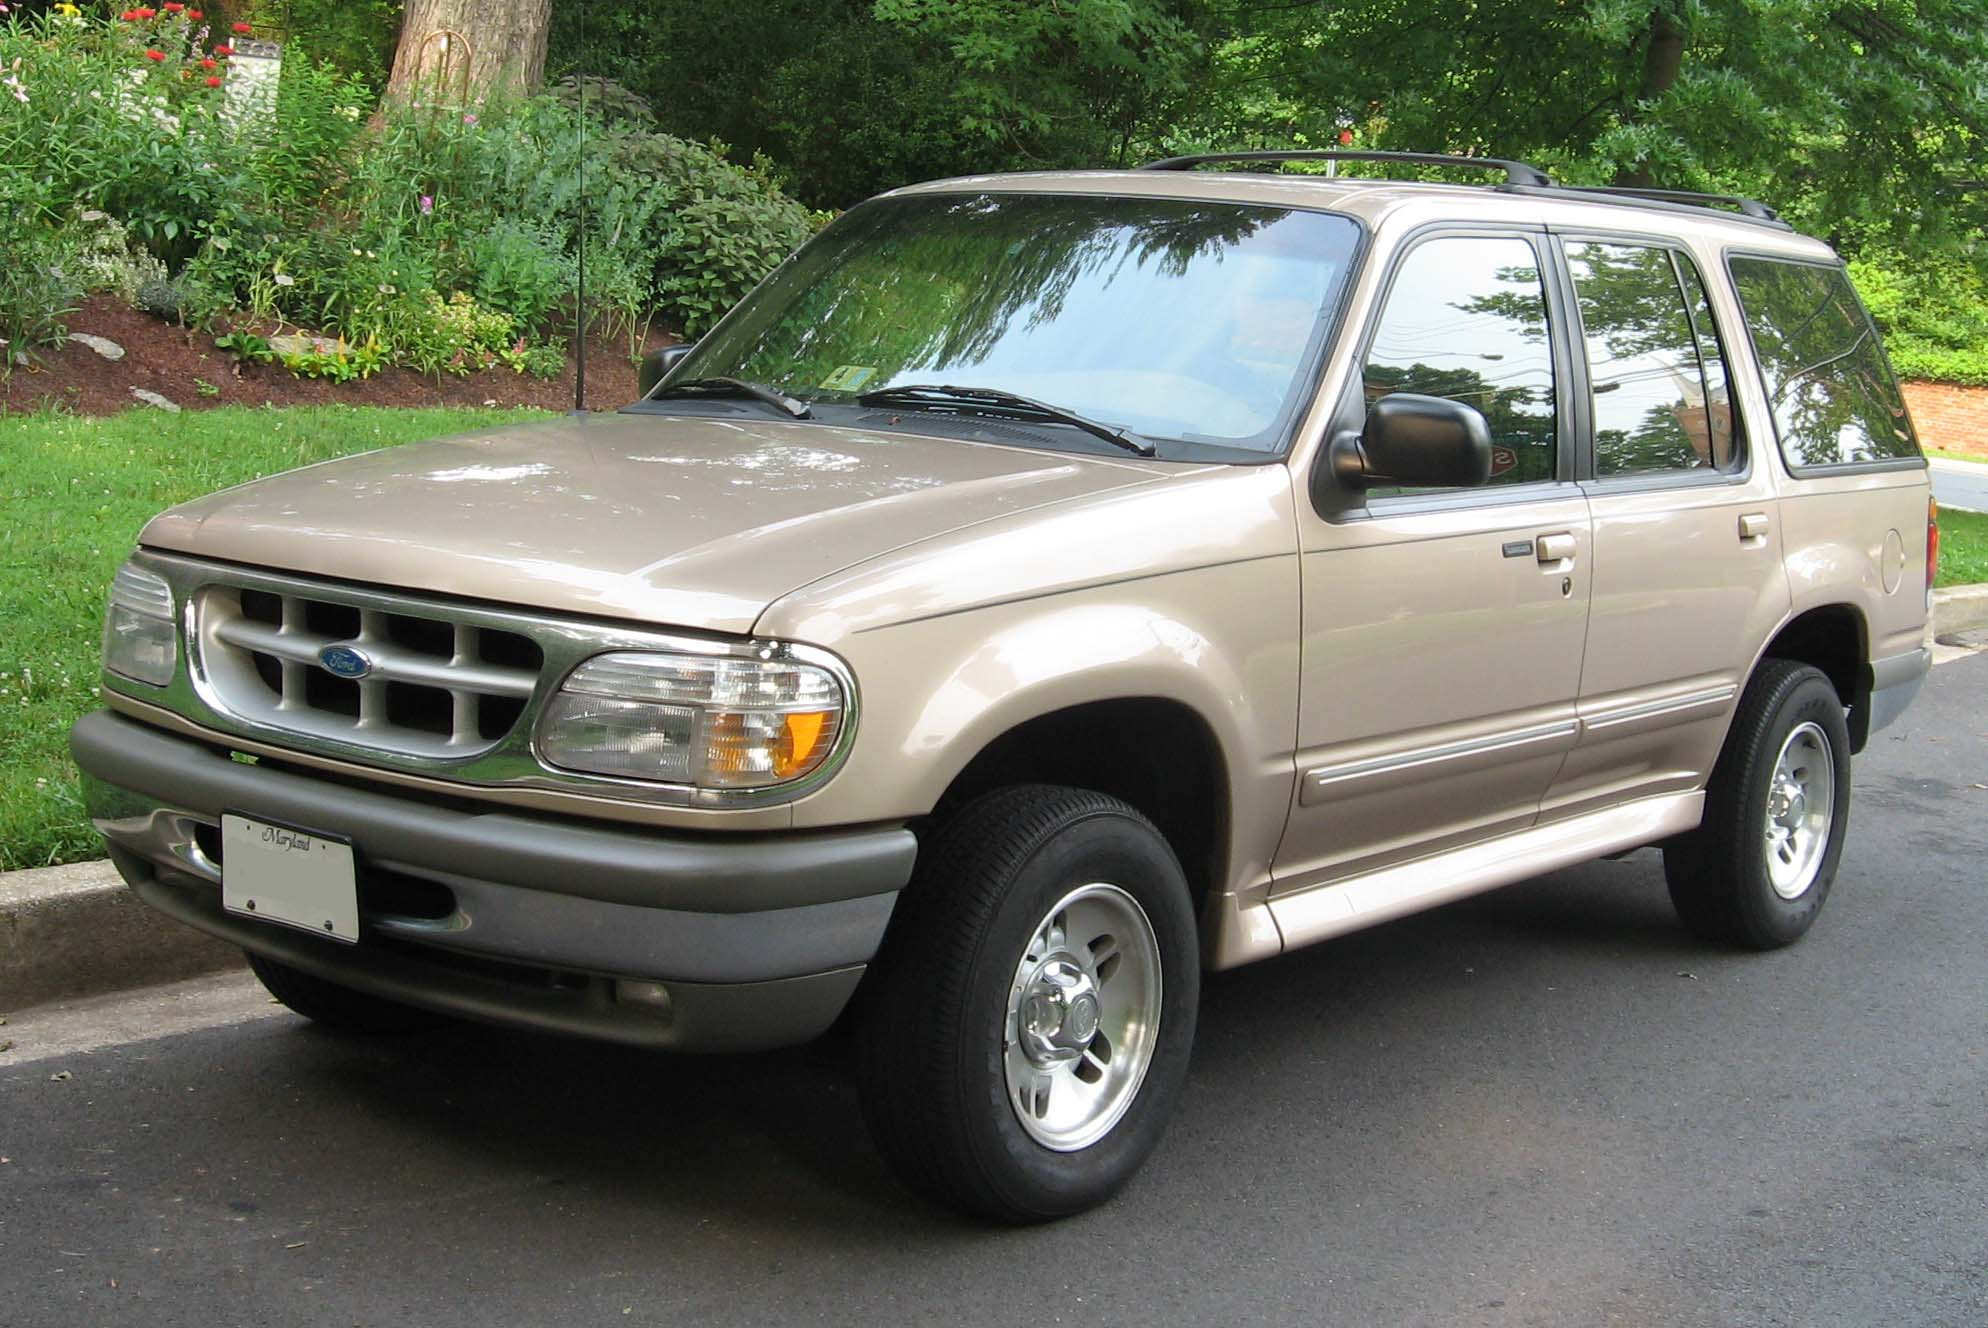 1999 Ford Expedition Vins Configurations Msrp Specs Autodetective